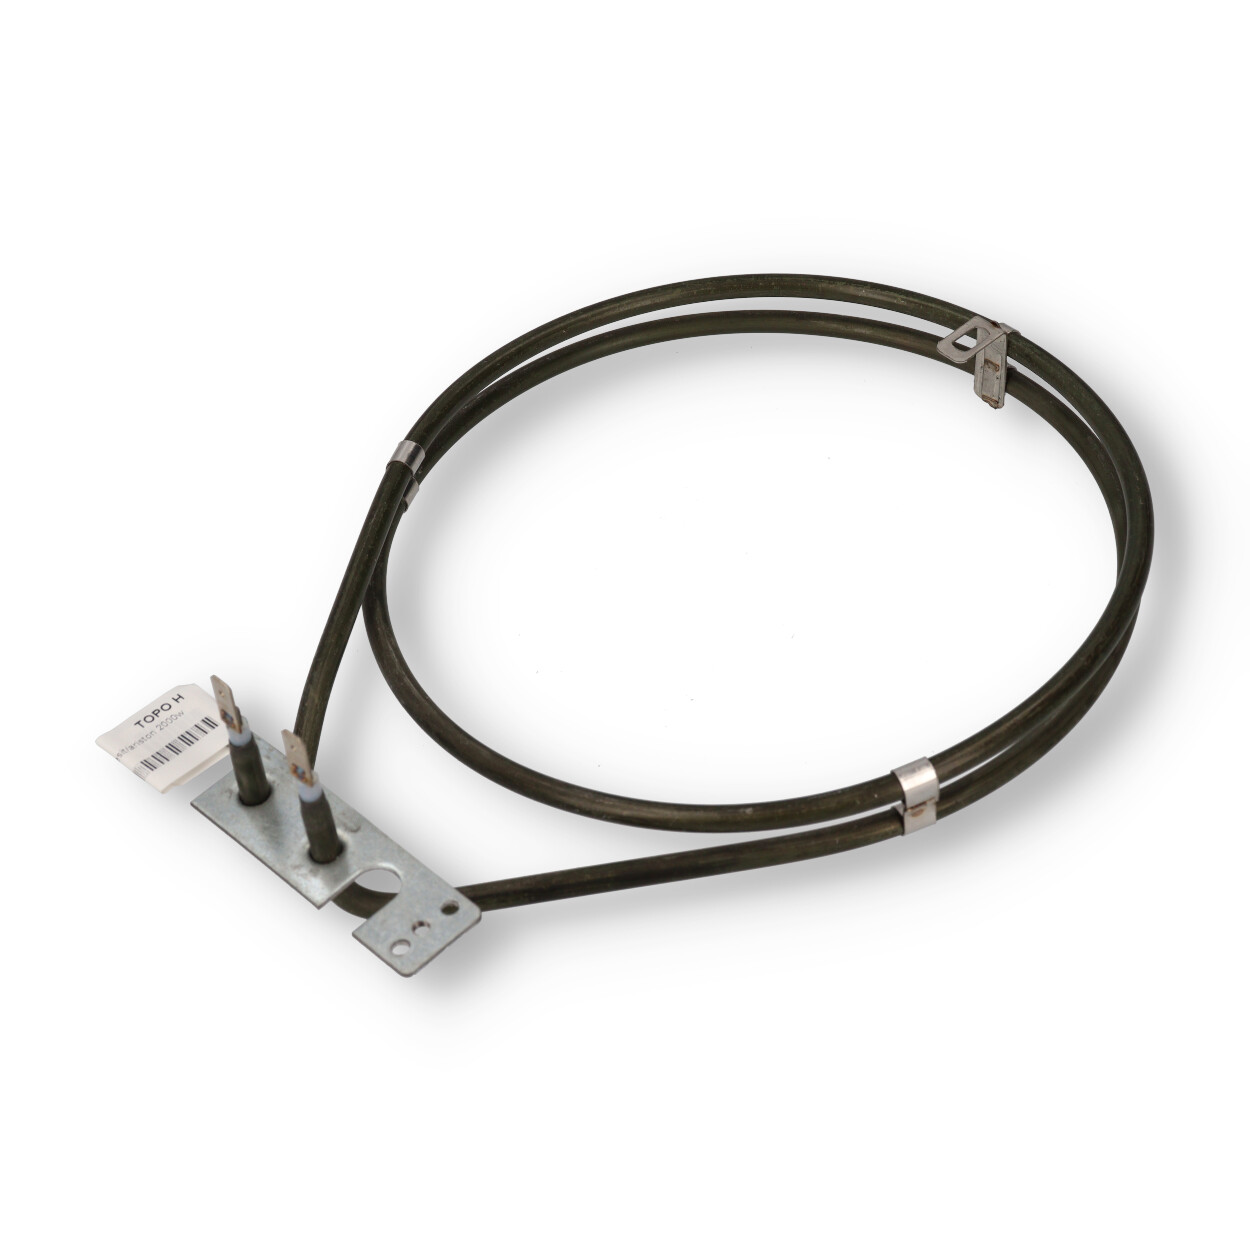 RESISTENCIA FOGAO INDESIT/ARISTON 2000W